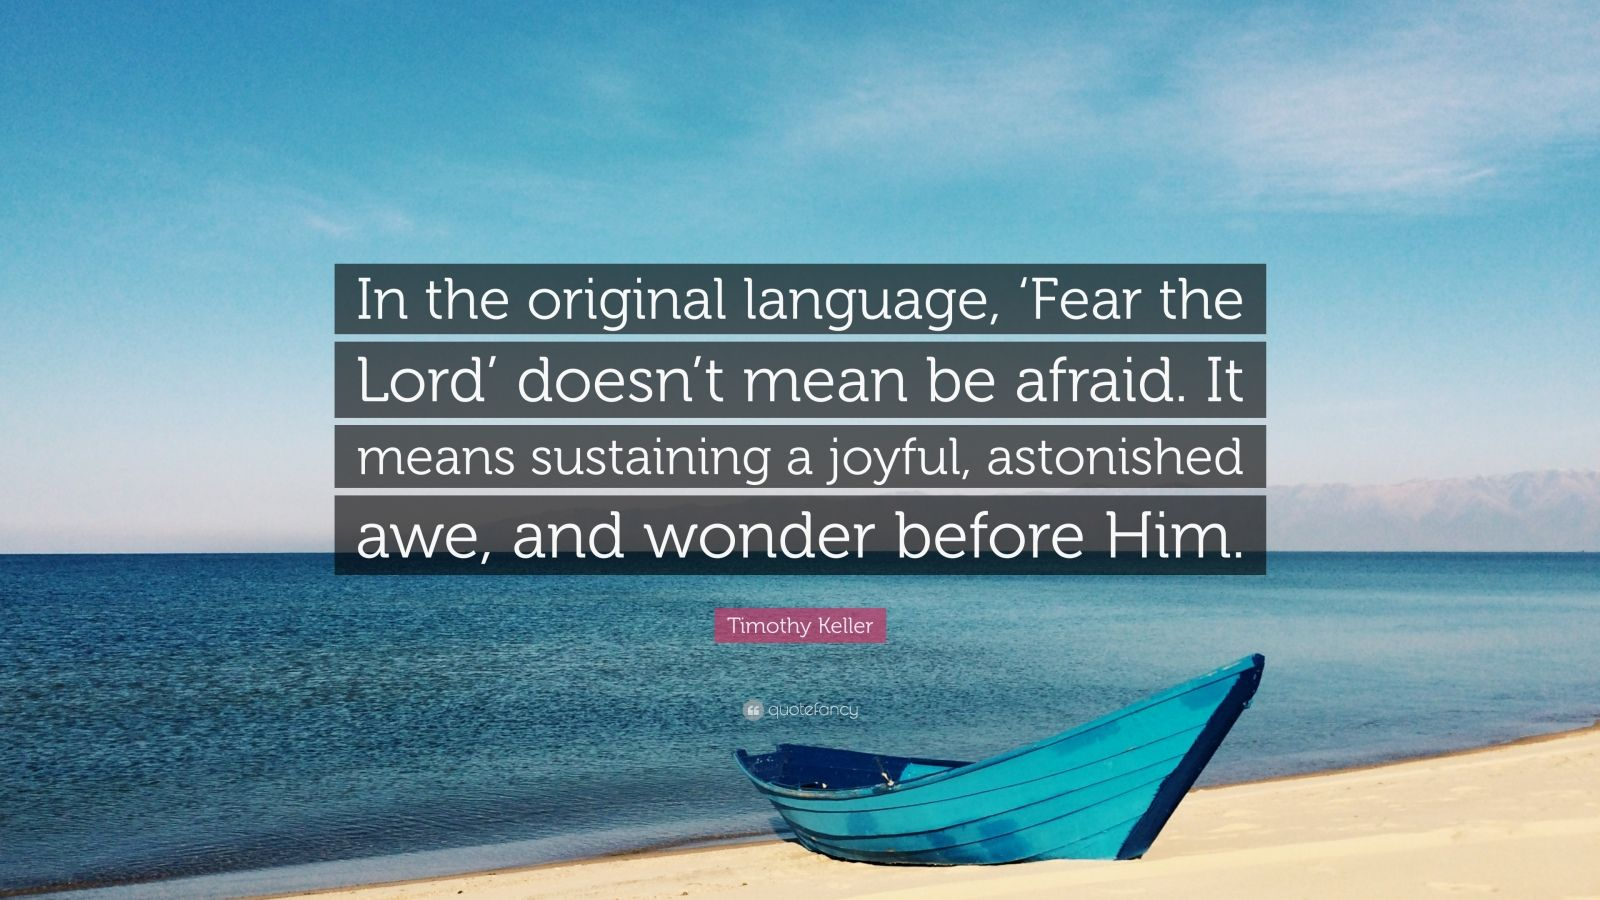 """Timothy Keller Quote: """"In the original language, 'Fear the Lord' doesn't mean be afraid. It means sustaining a joyful, astonished awe, and wonder before Him."""""""